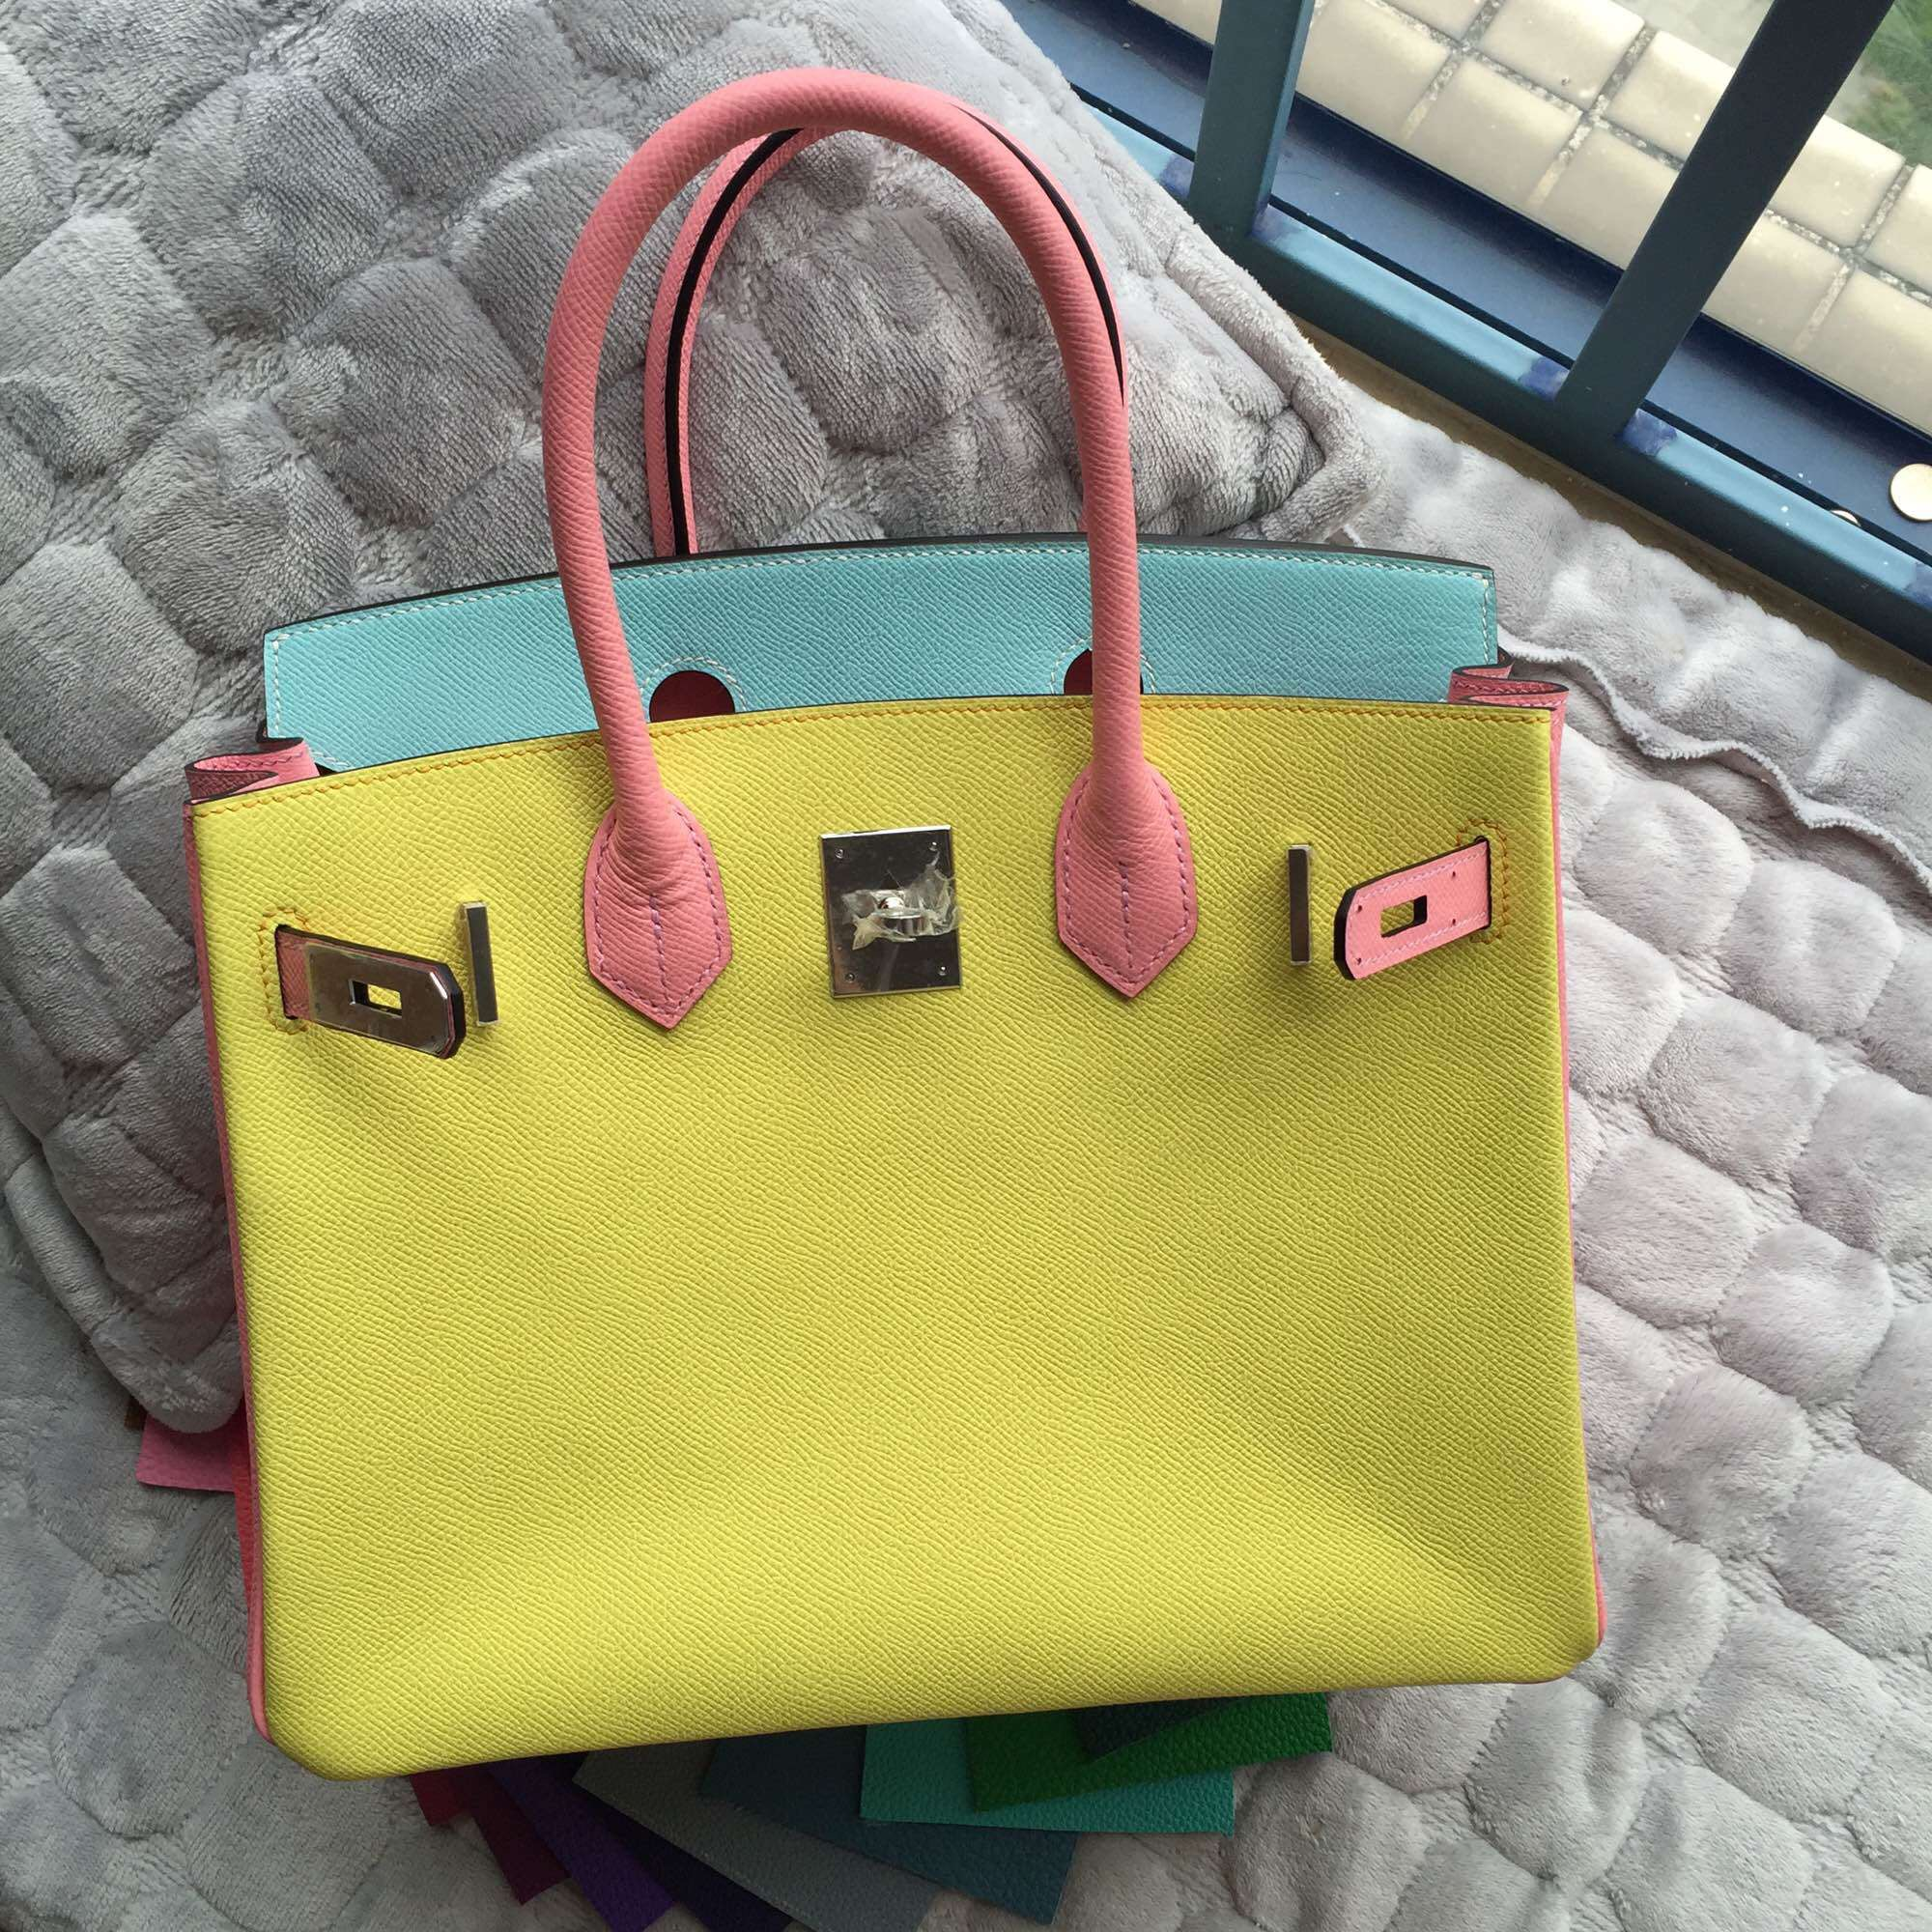 30CM Hermes Birkin Bag C9 Lime Yellow/3P Lagon Blue/1Q Rose Confetti Epsom Leather